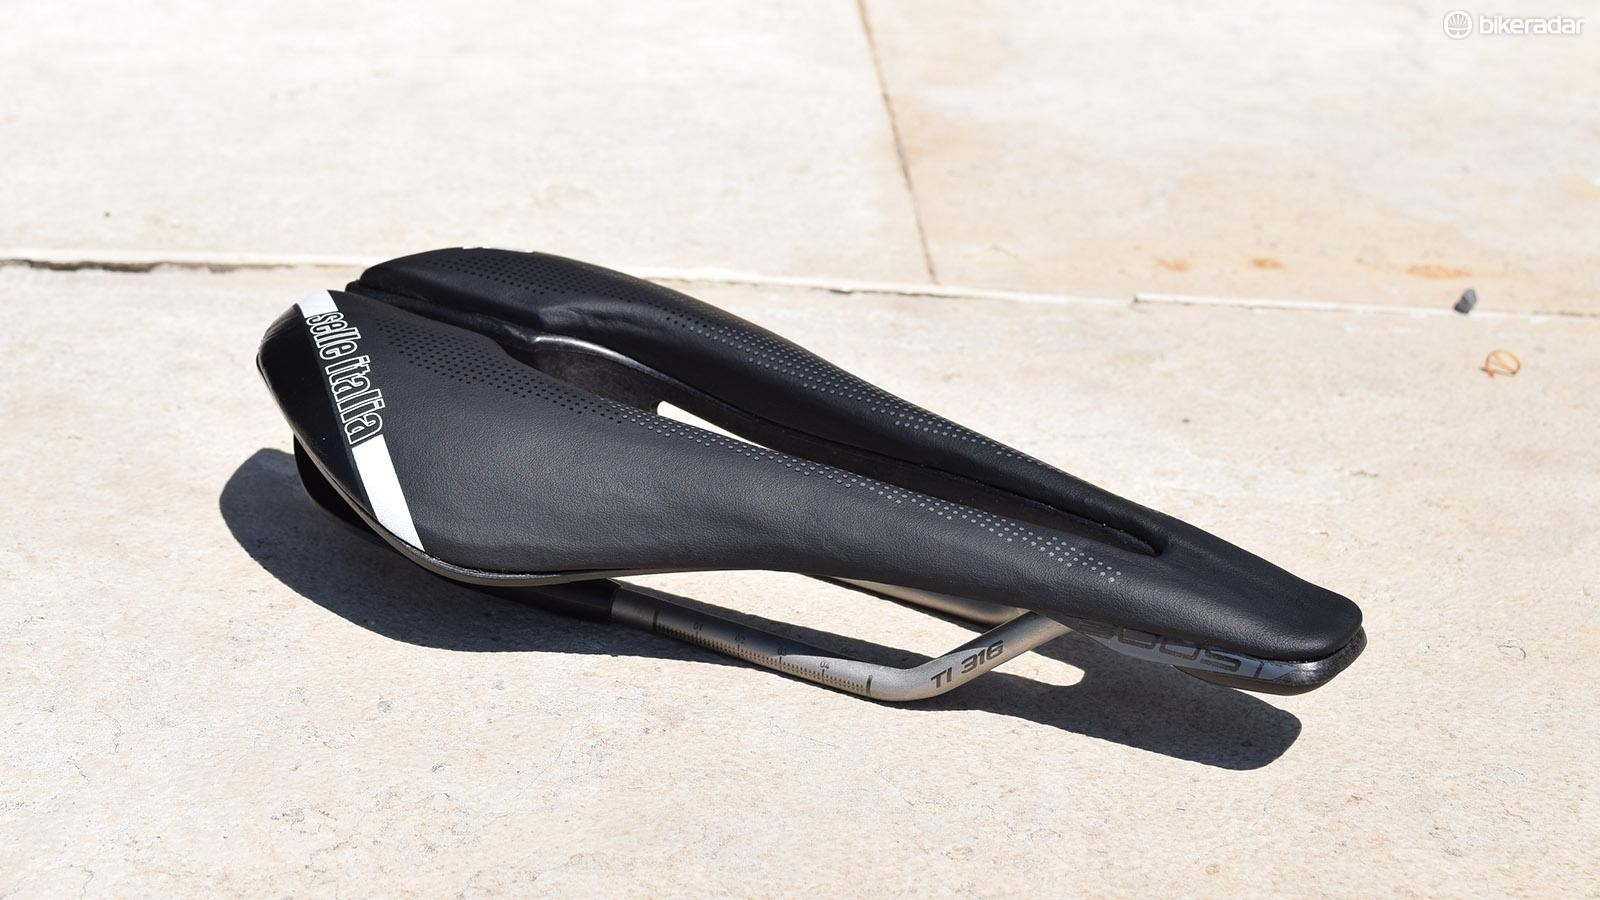 Selle Italia's SP-01 Boost Superflow road saddle